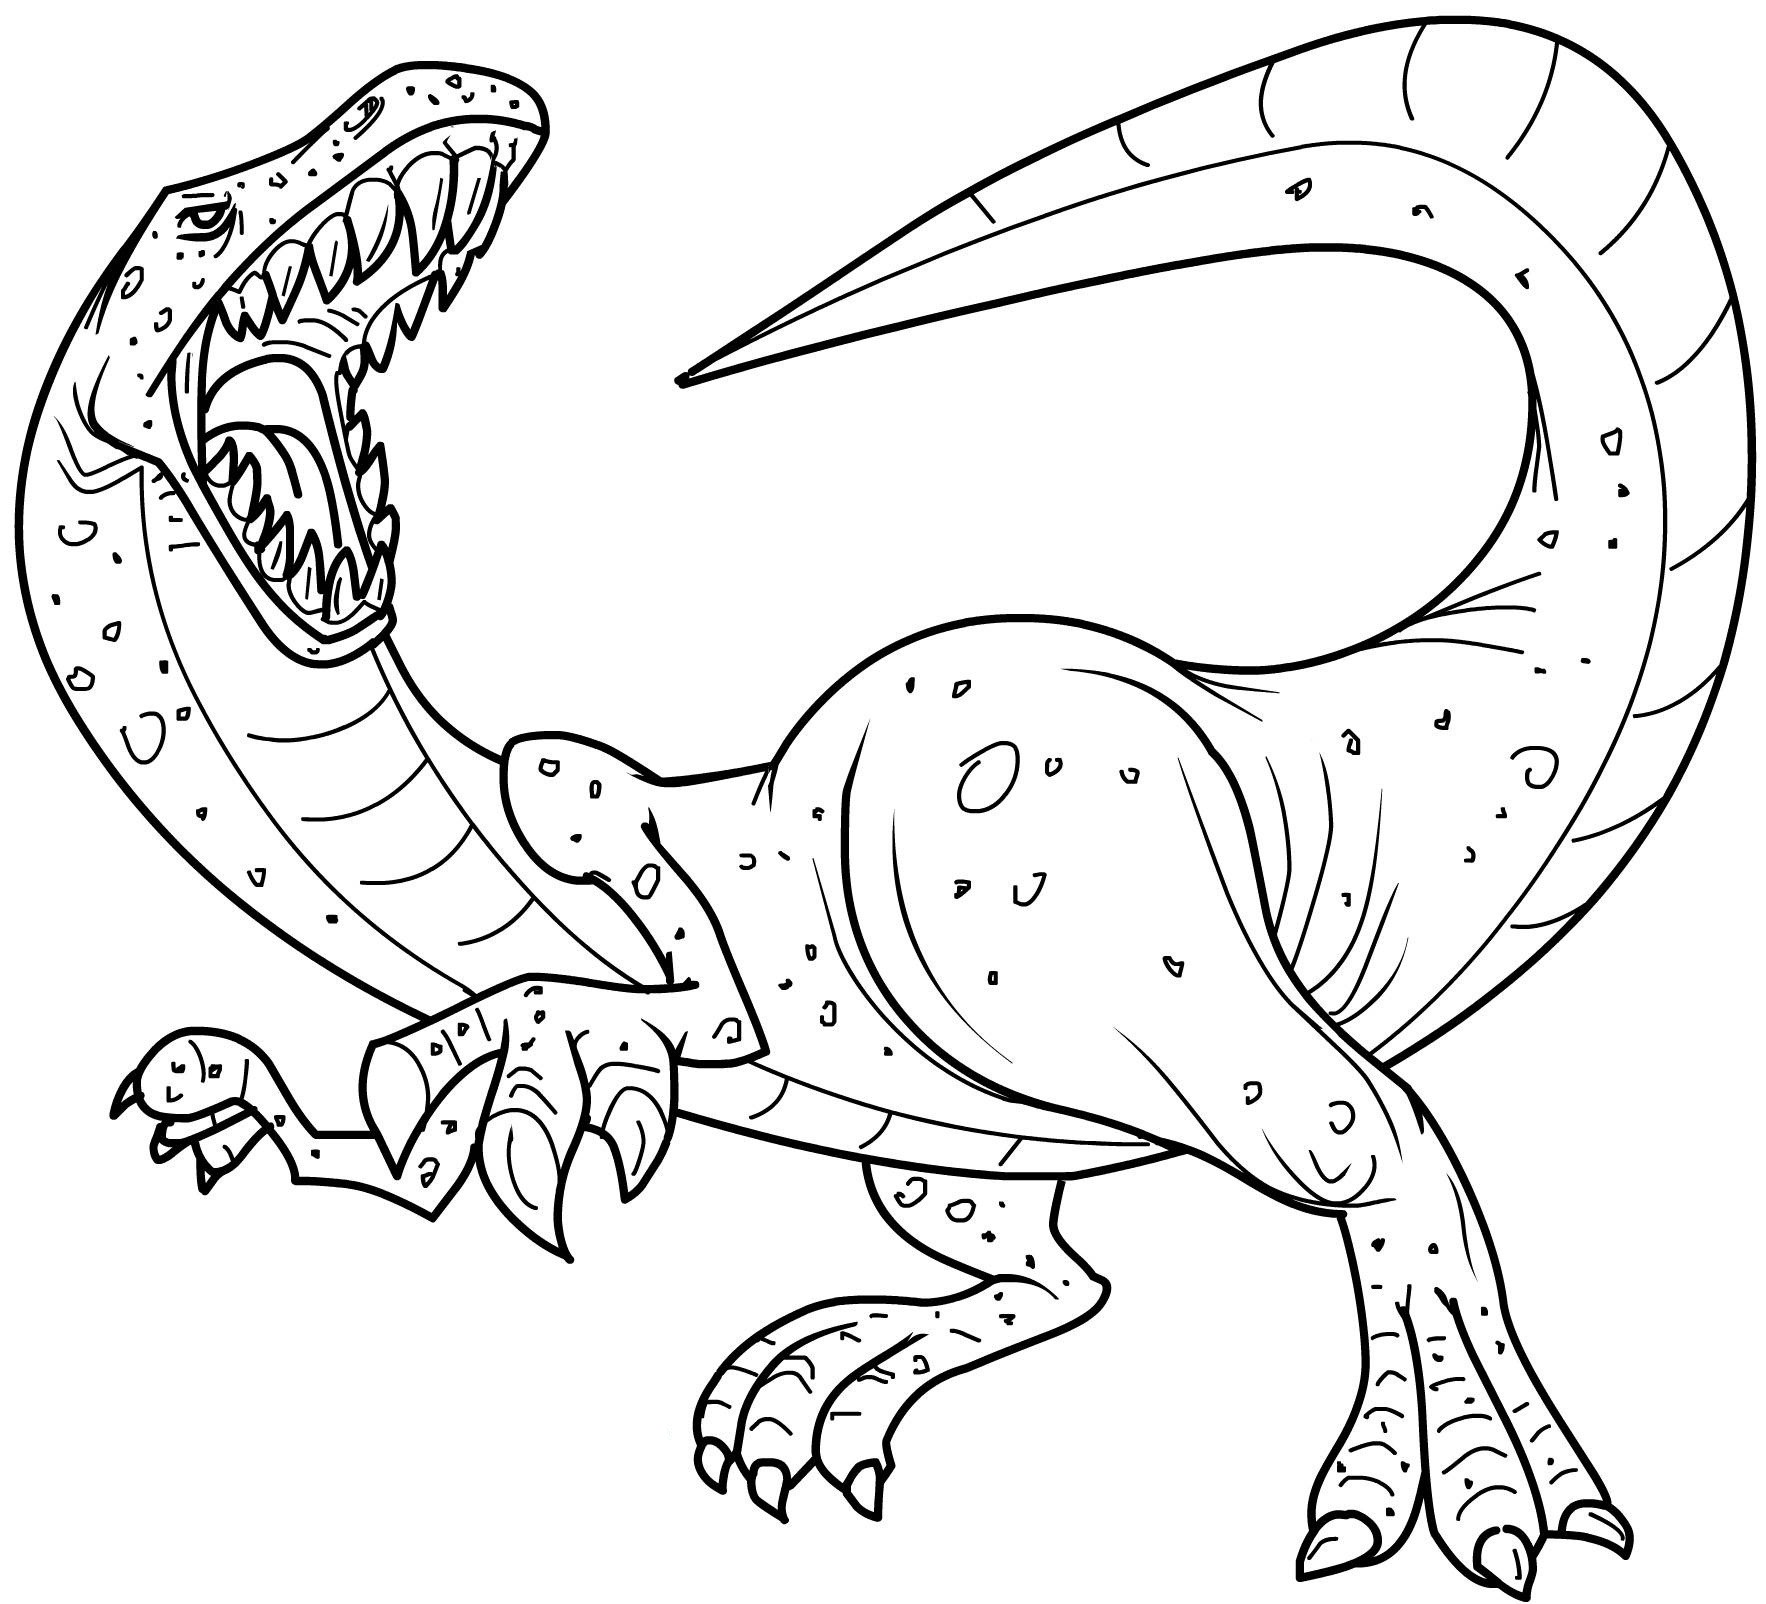 1766x1604 Coloring Pages. Free Dinosaur Coloring Pages